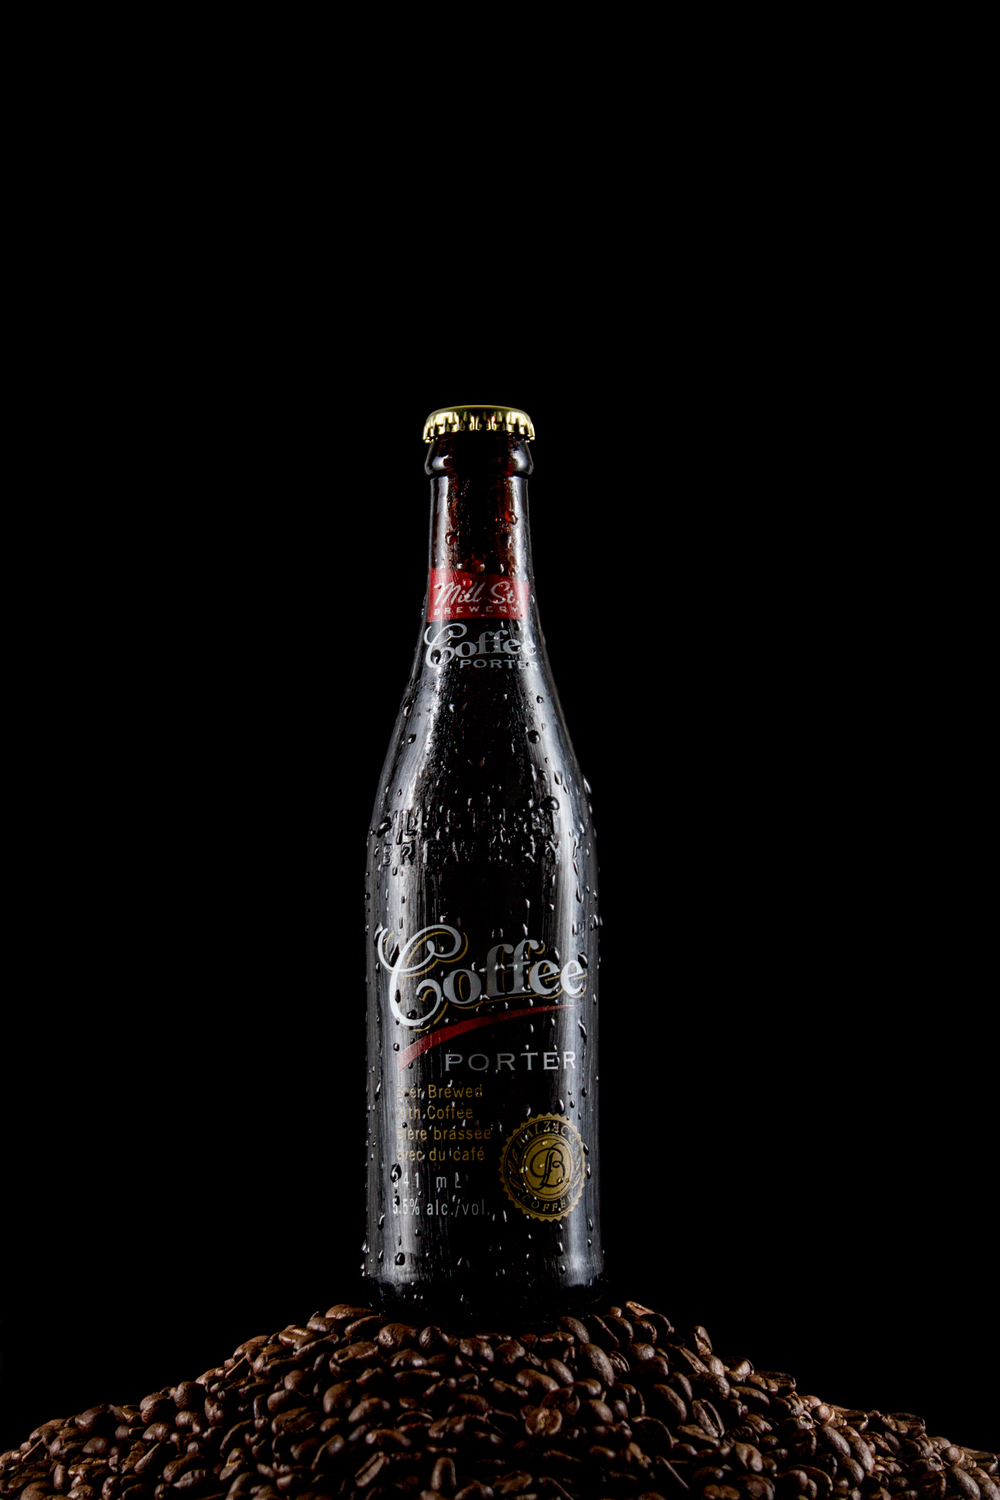 Brooke-Rosales-Calgary-Photography-Product-Beer.jpg